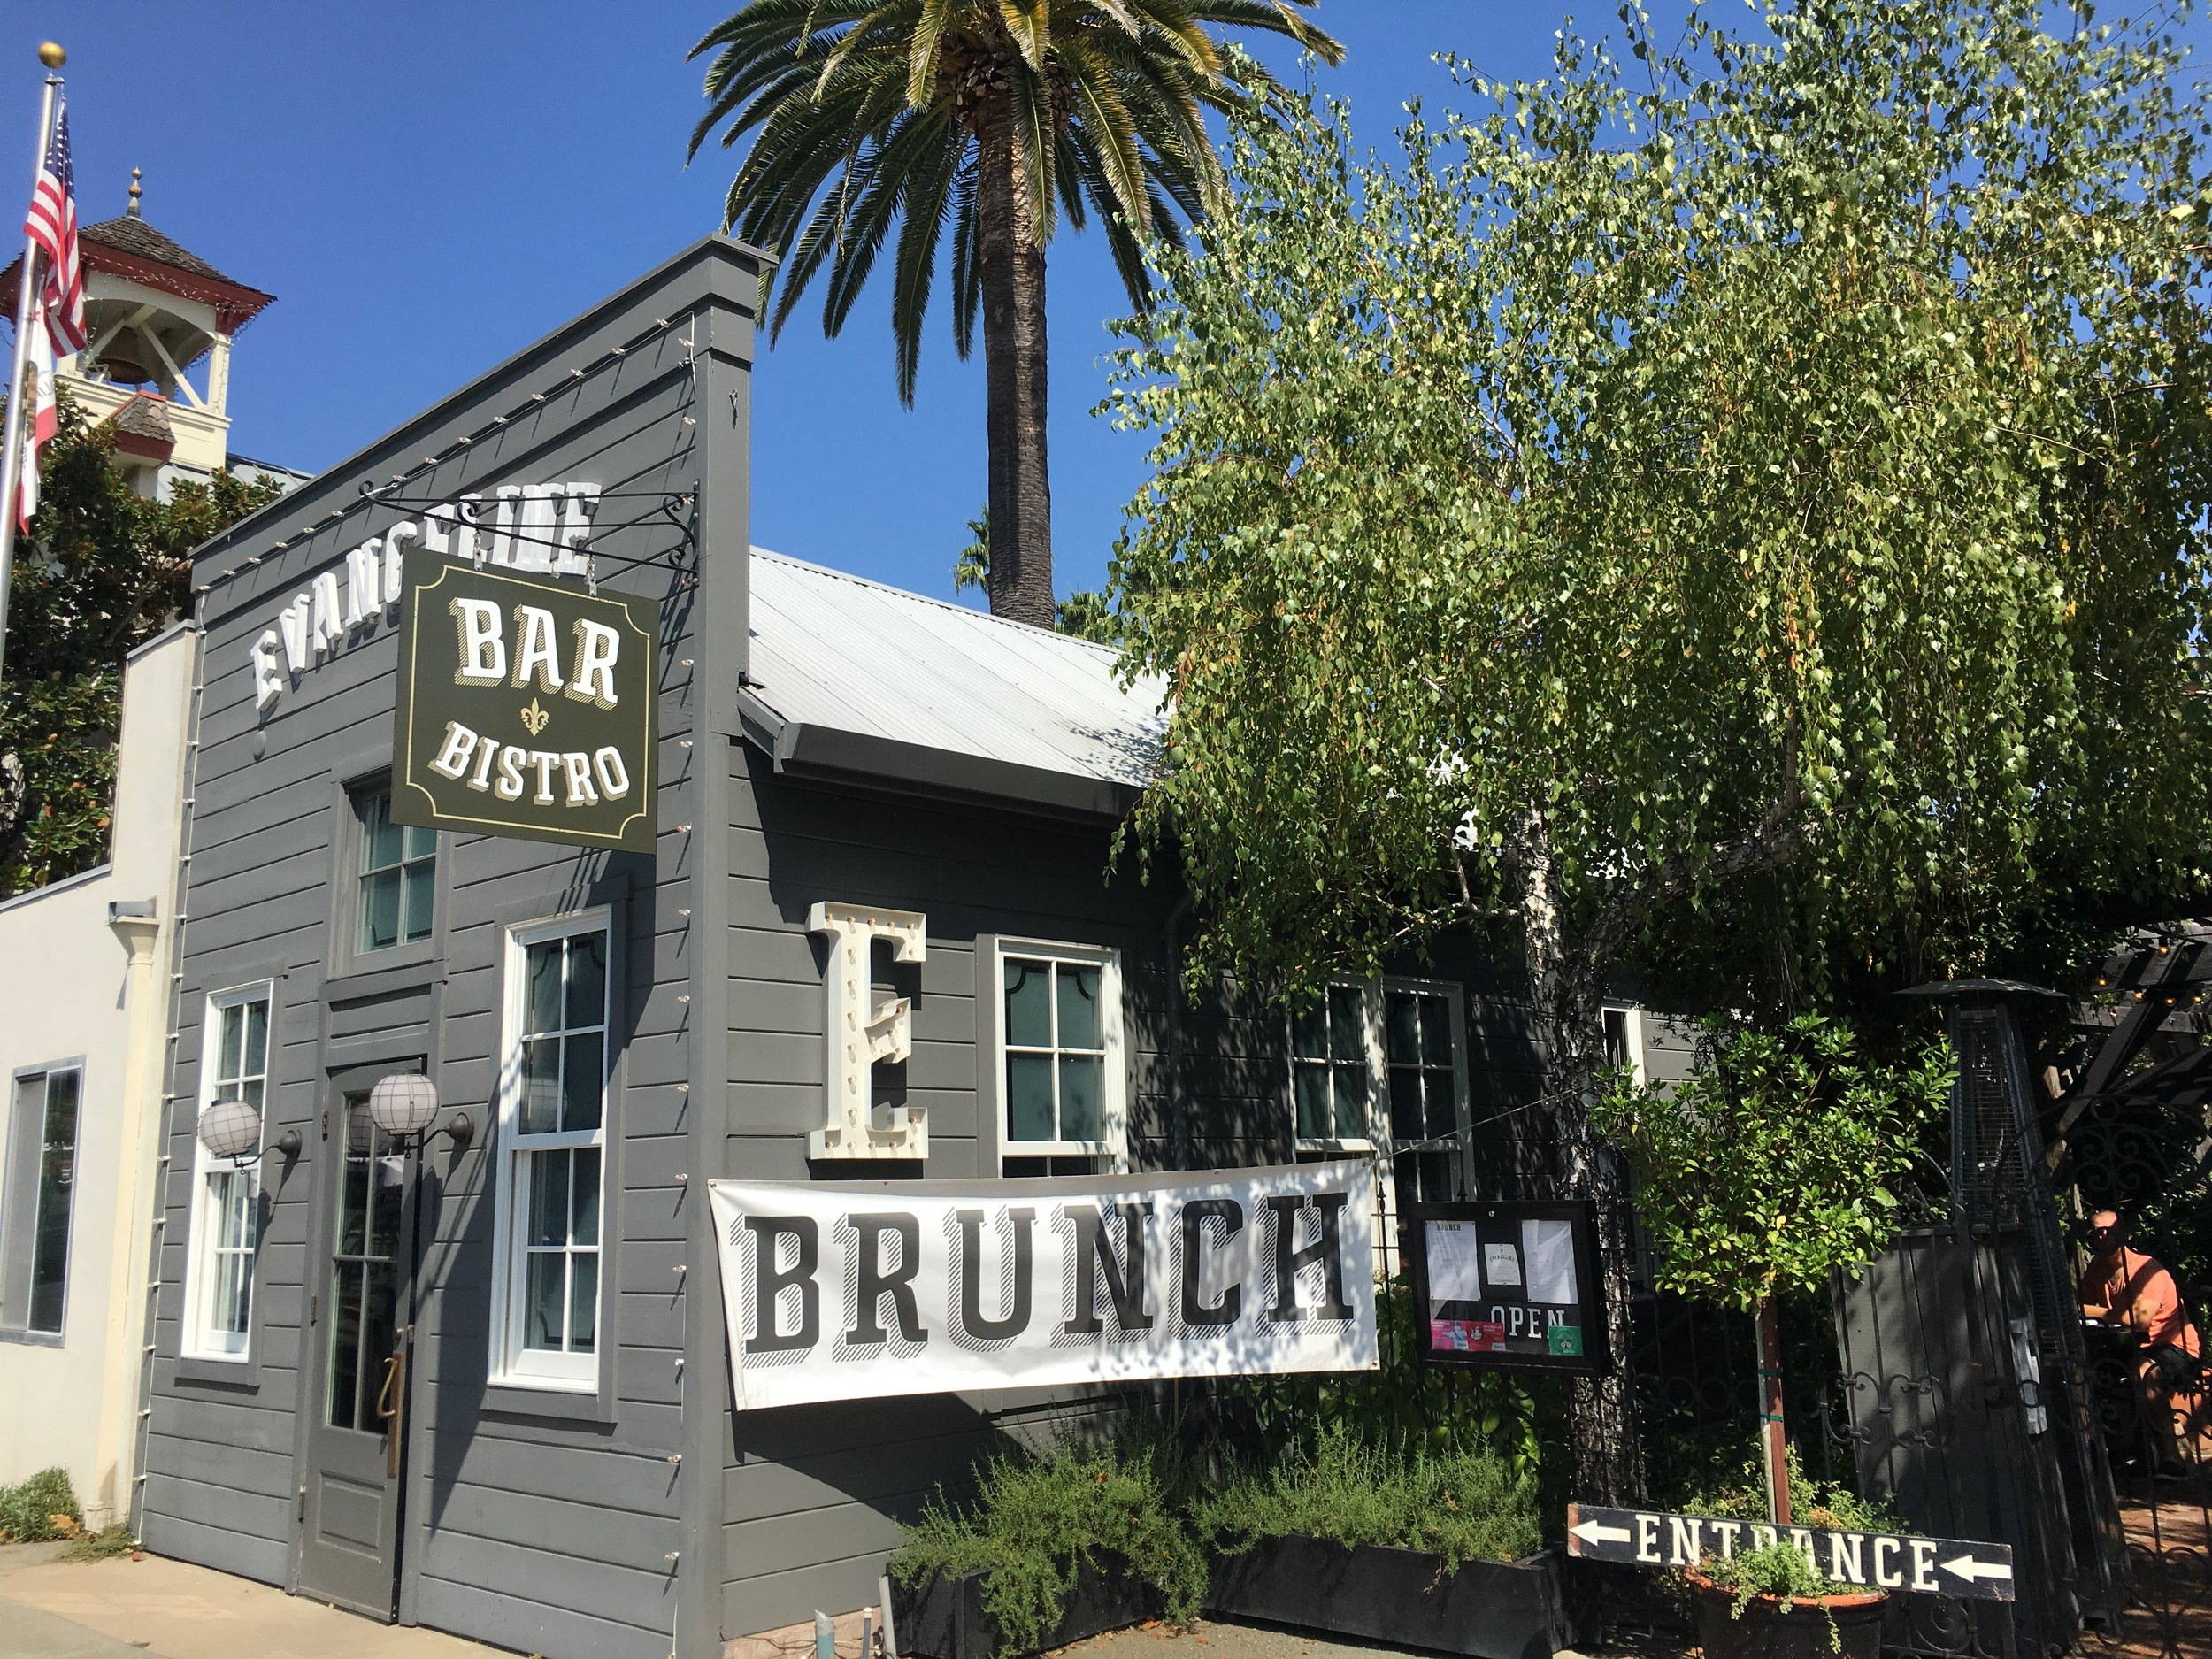 One of the many yummy places to eat in Calistoga.